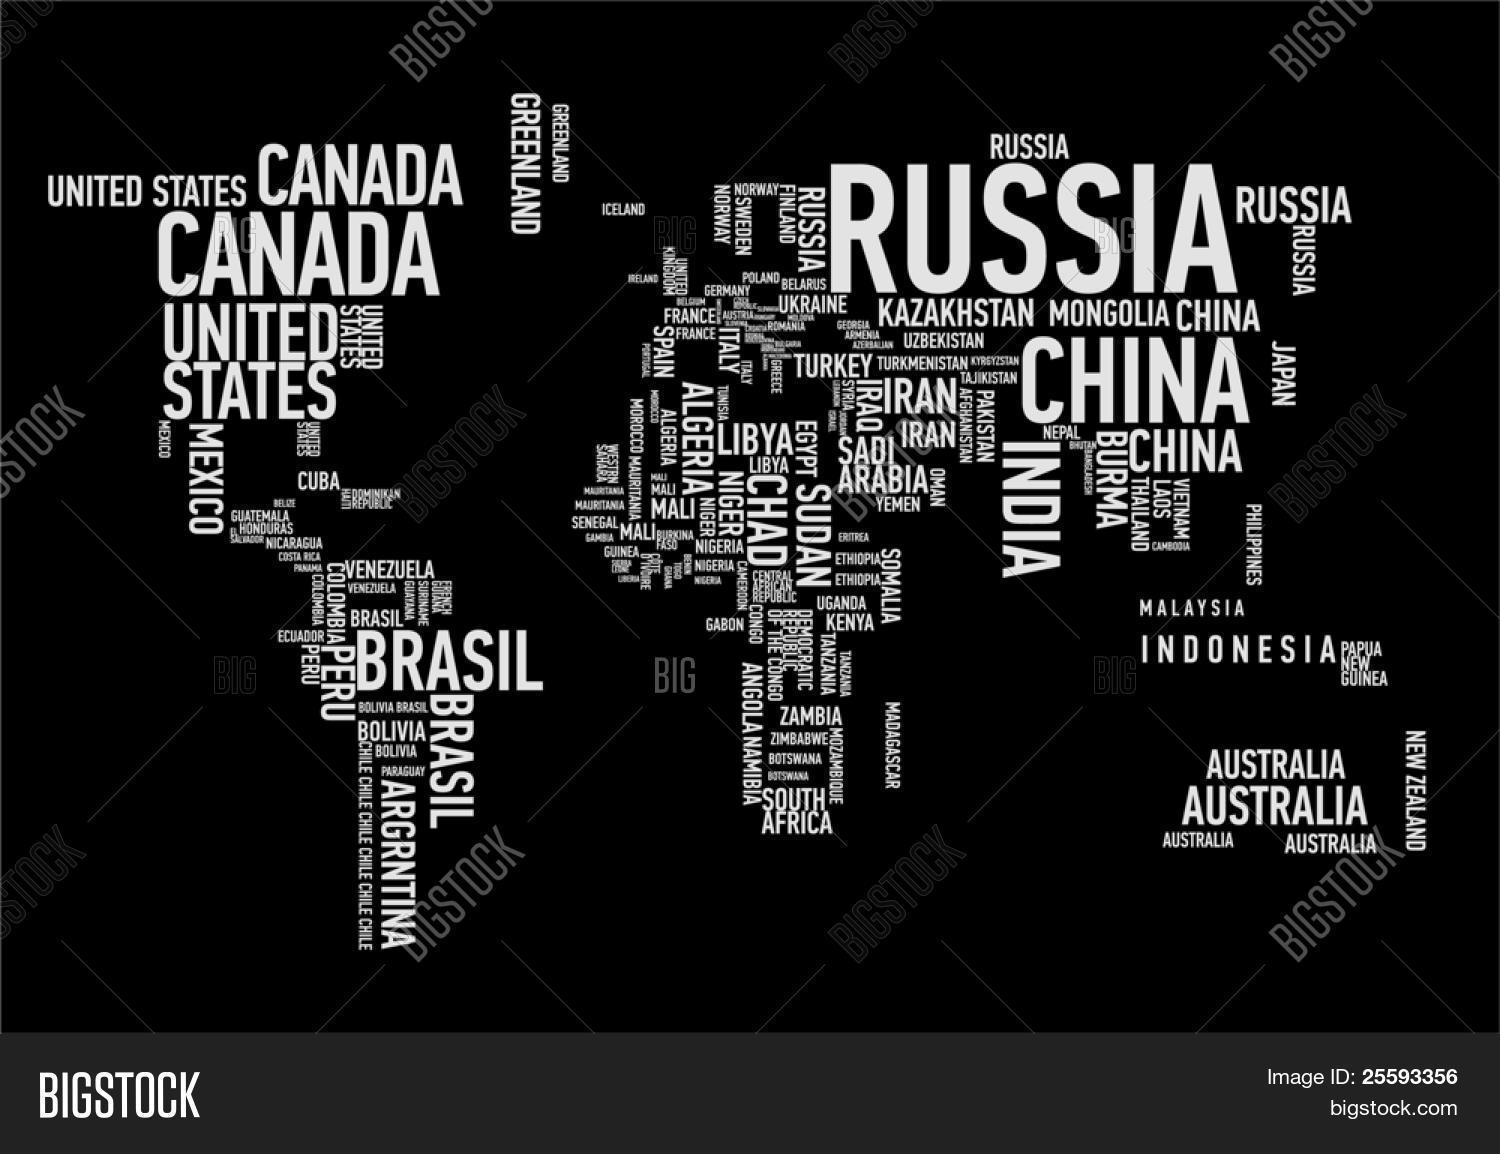 World map countries vector photo free trial bigstock world map countries in wordcloud gumiabroncs Images